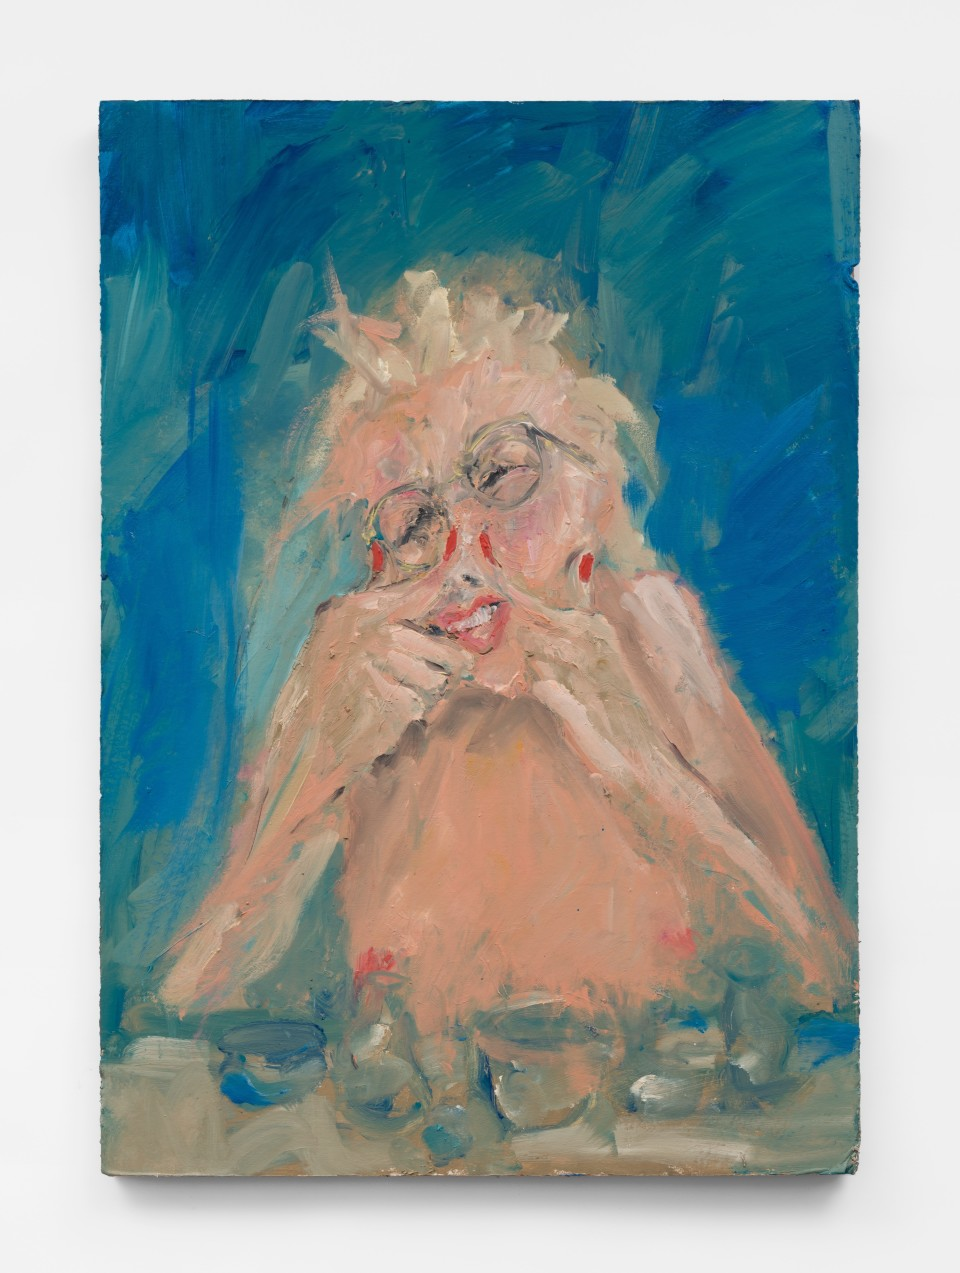 Image: Eva Beresin  Never stand naked in front of a mirror and when that happens I close my eyes tight, 2021  signed, dated and titled verso  oil on cardboard  39 x 27 1/2 inches (99.1 x 69.8 cm)  (EBe.21.015.39)